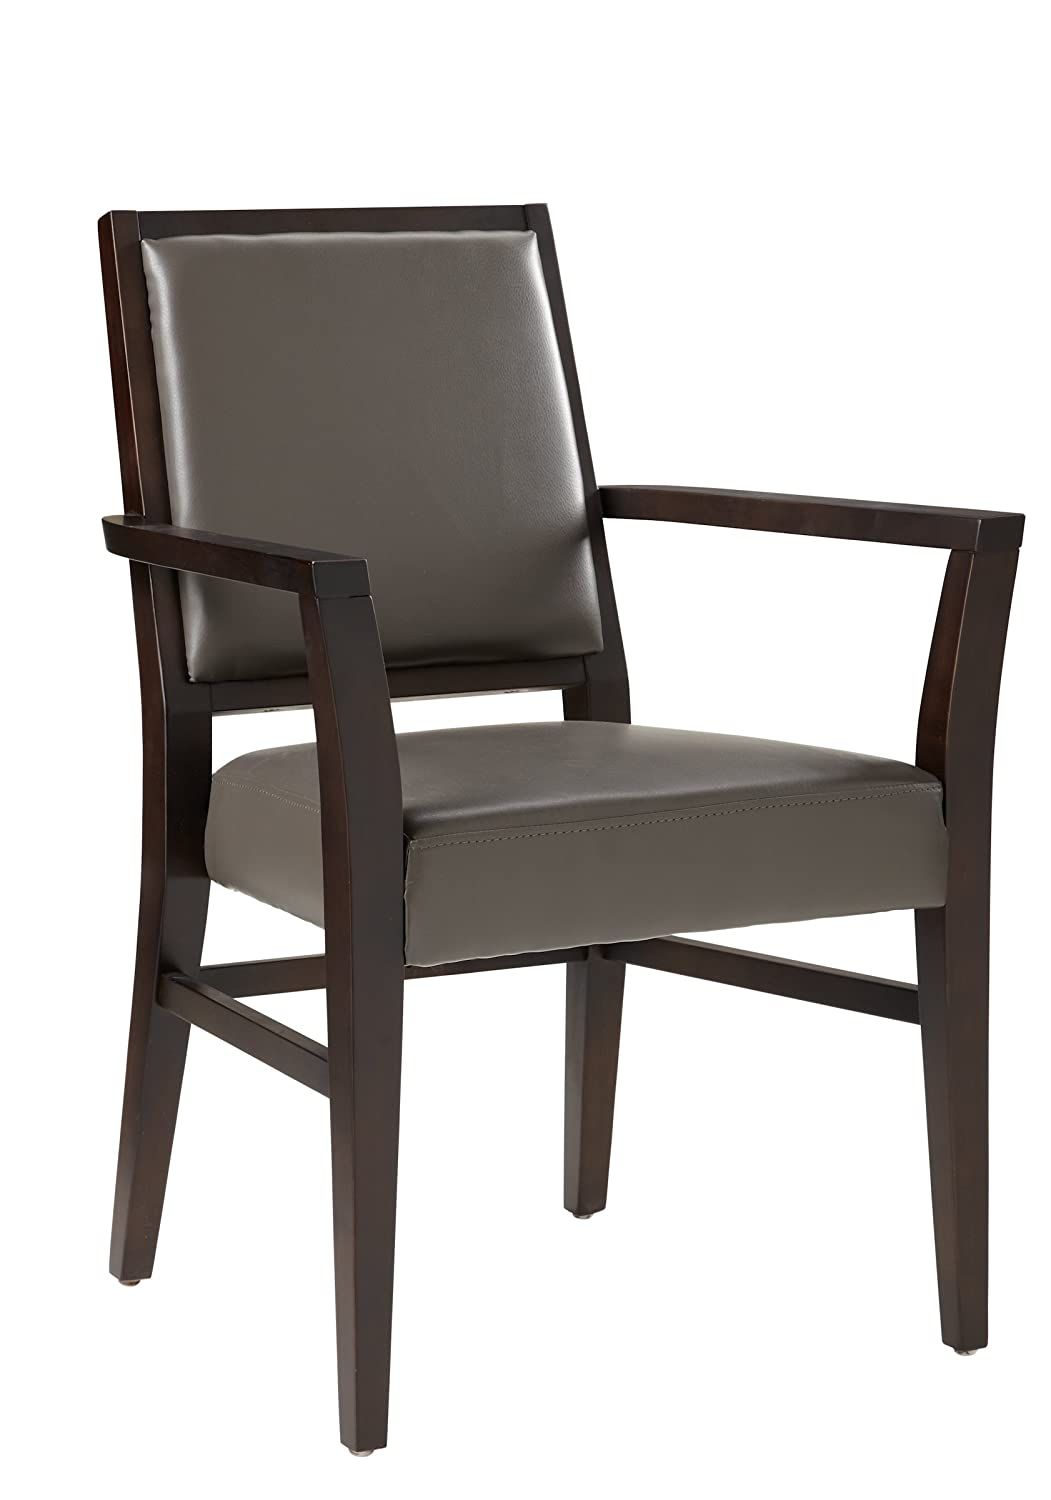 About A Chair 22 Armchair.Amazon Com Sunpan 29058 5west Dining Chairs 22 X 25 Grey